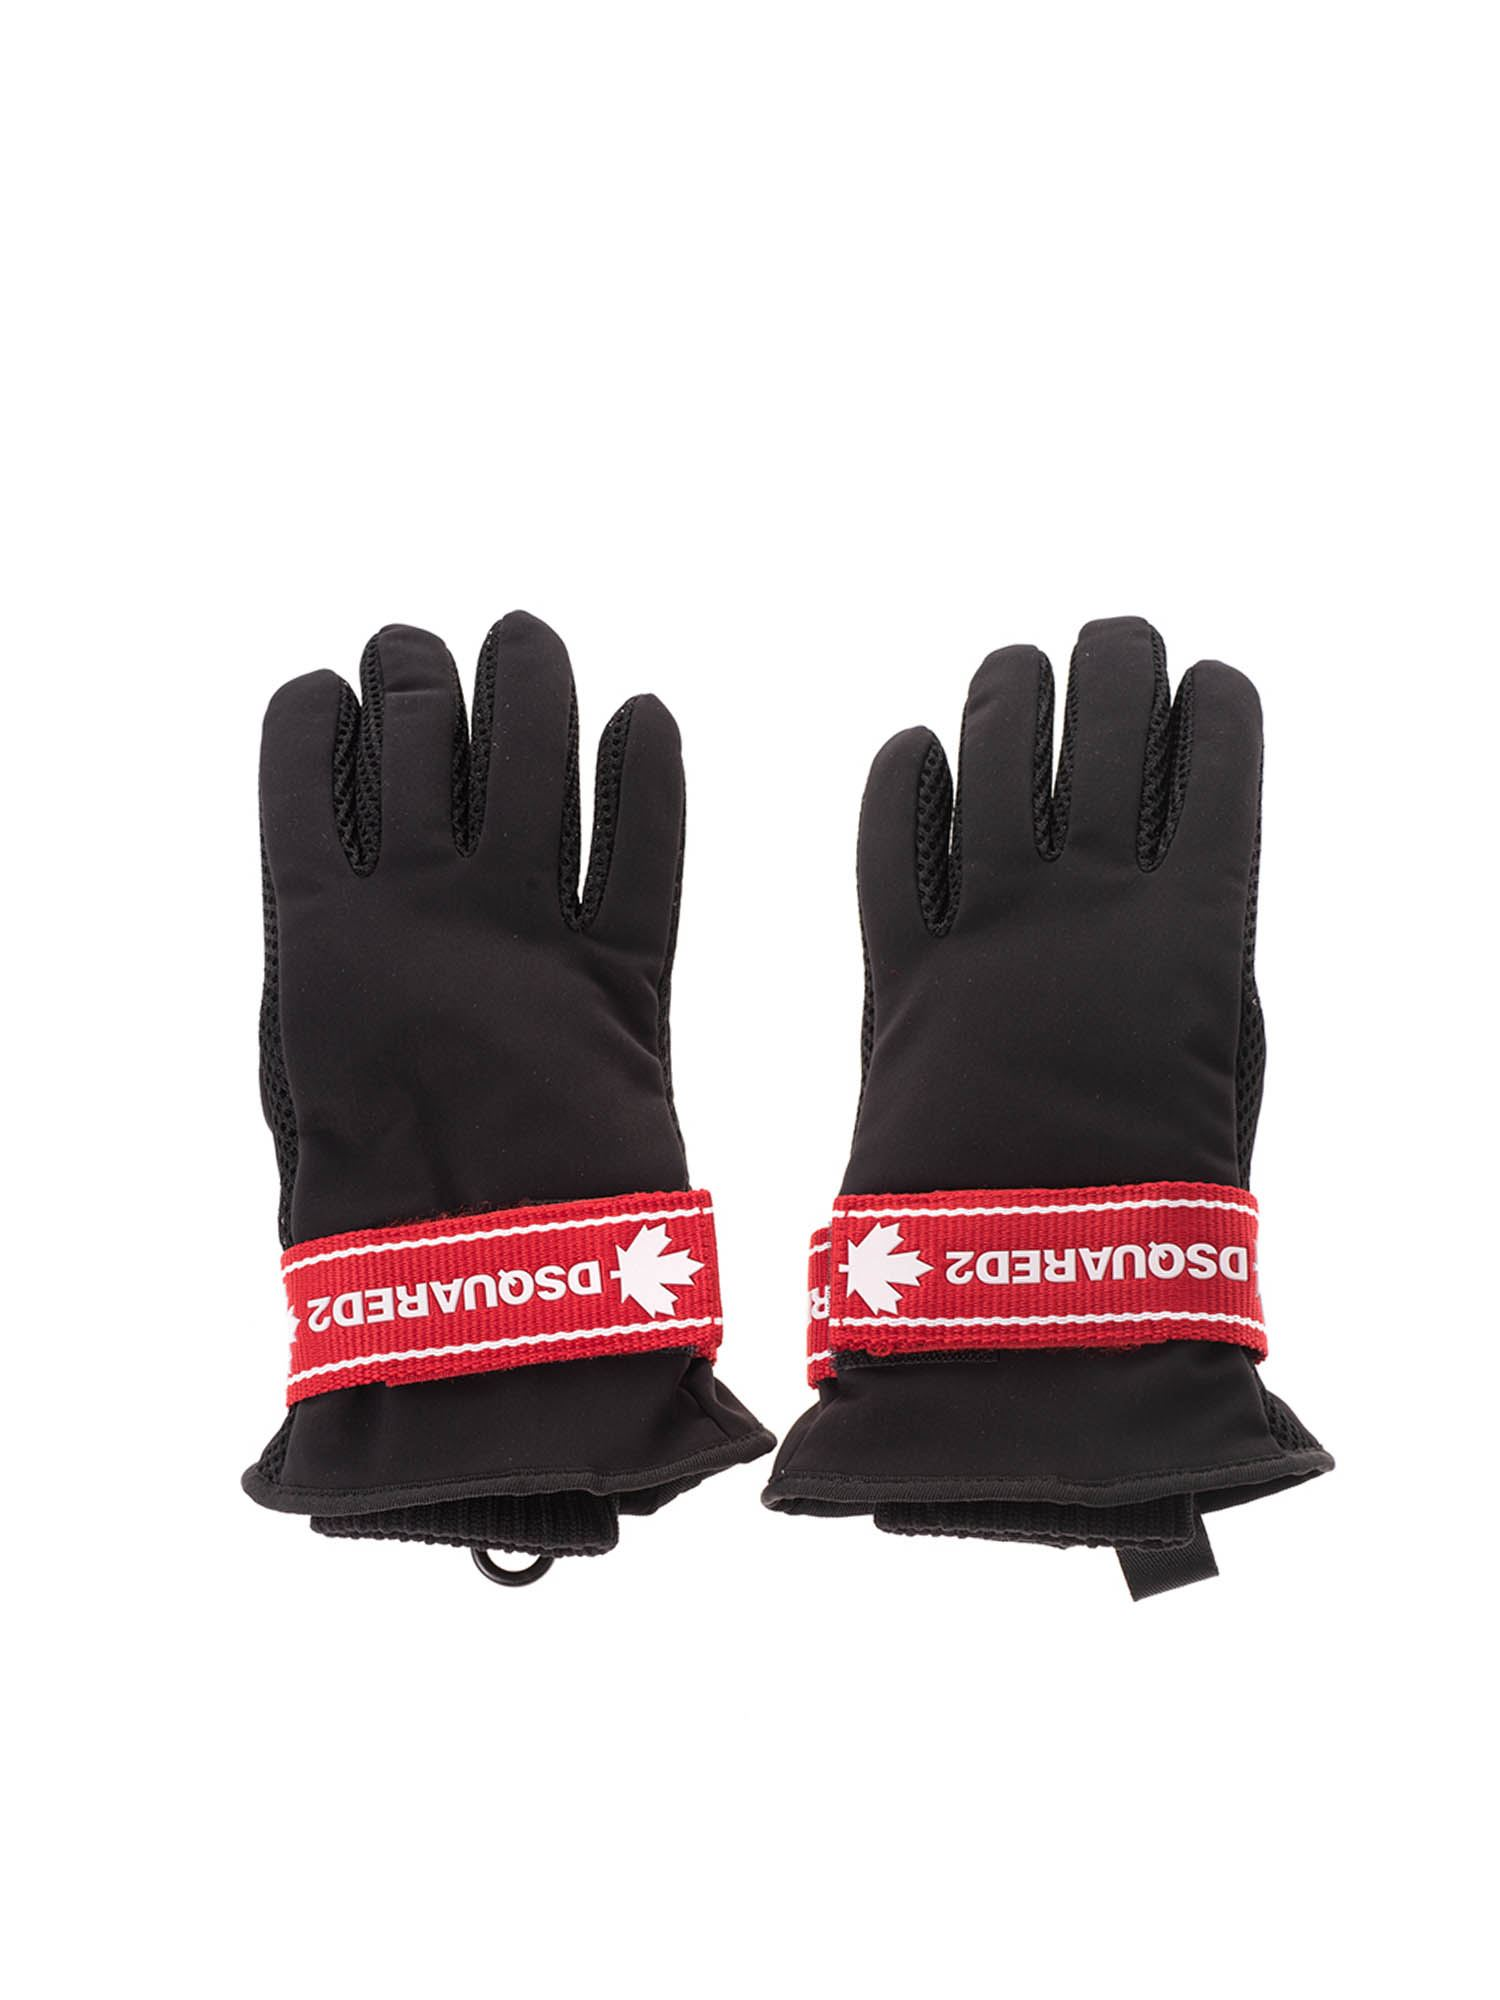 Dsquared2 LOGO TAPE GLOVES IN BLACK AND RED